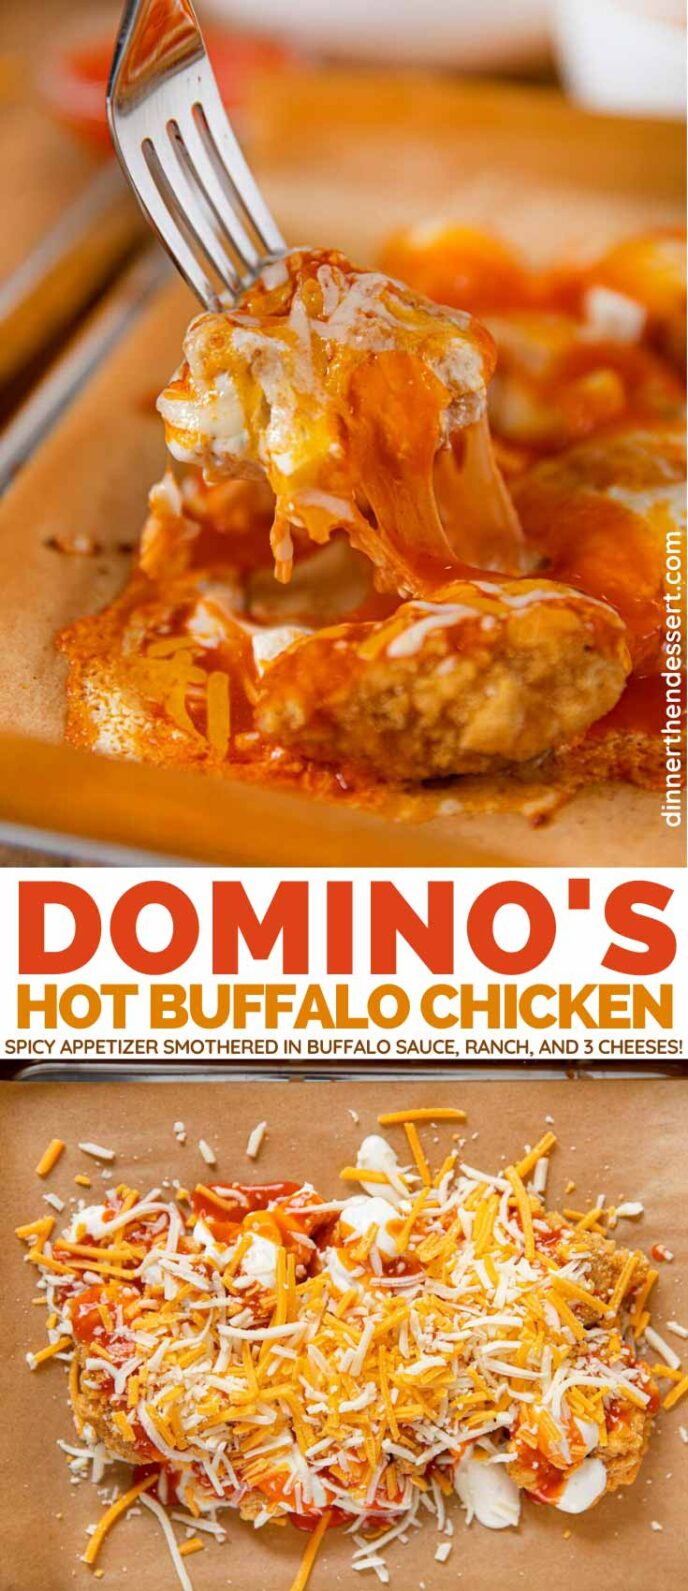 Domino's Hot Buffalo Chicken (Copycat) collage